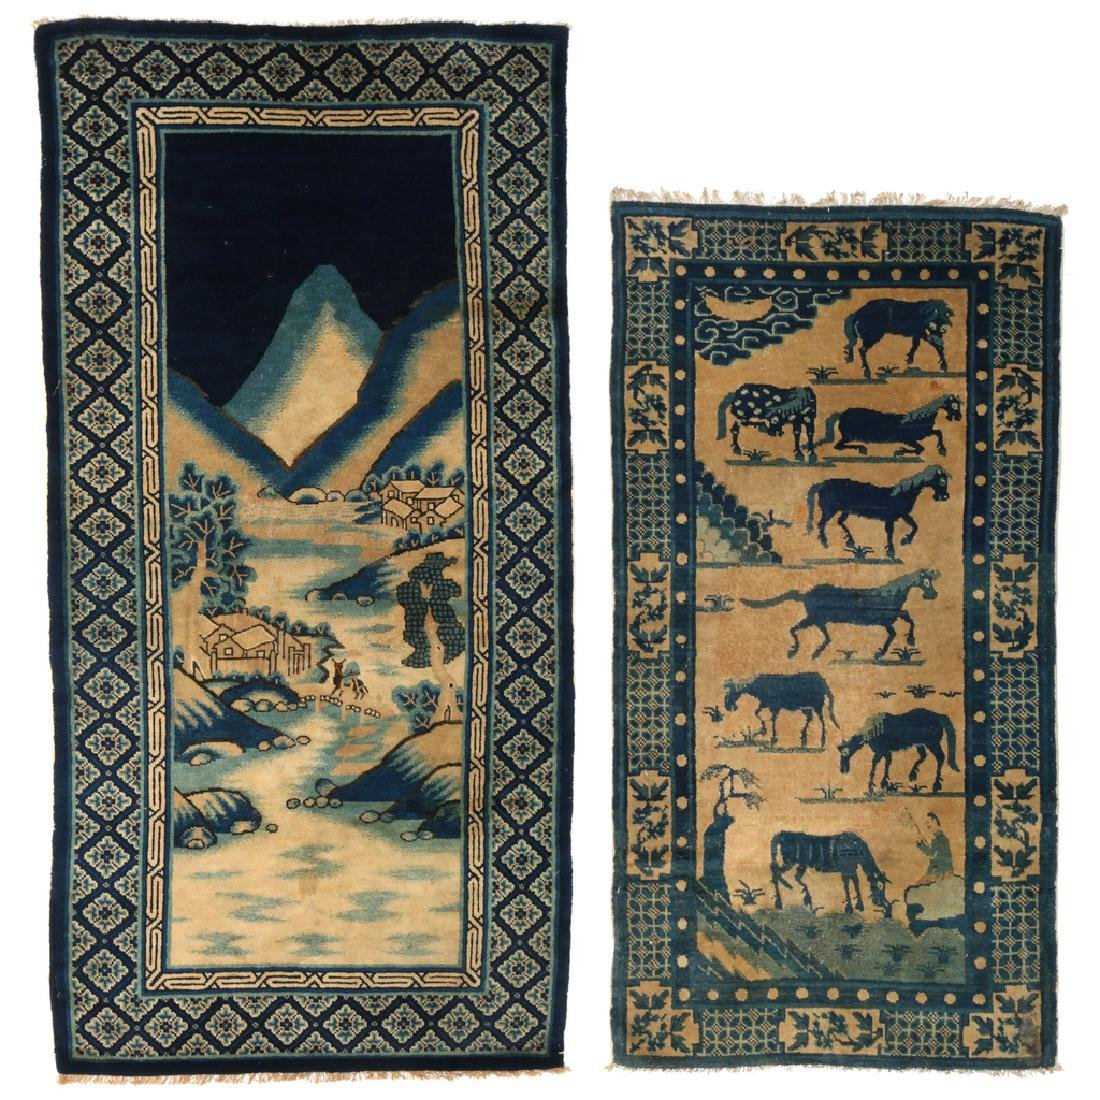 (2pc) ANTIQUE CHINESE PICTORIAL RUGS